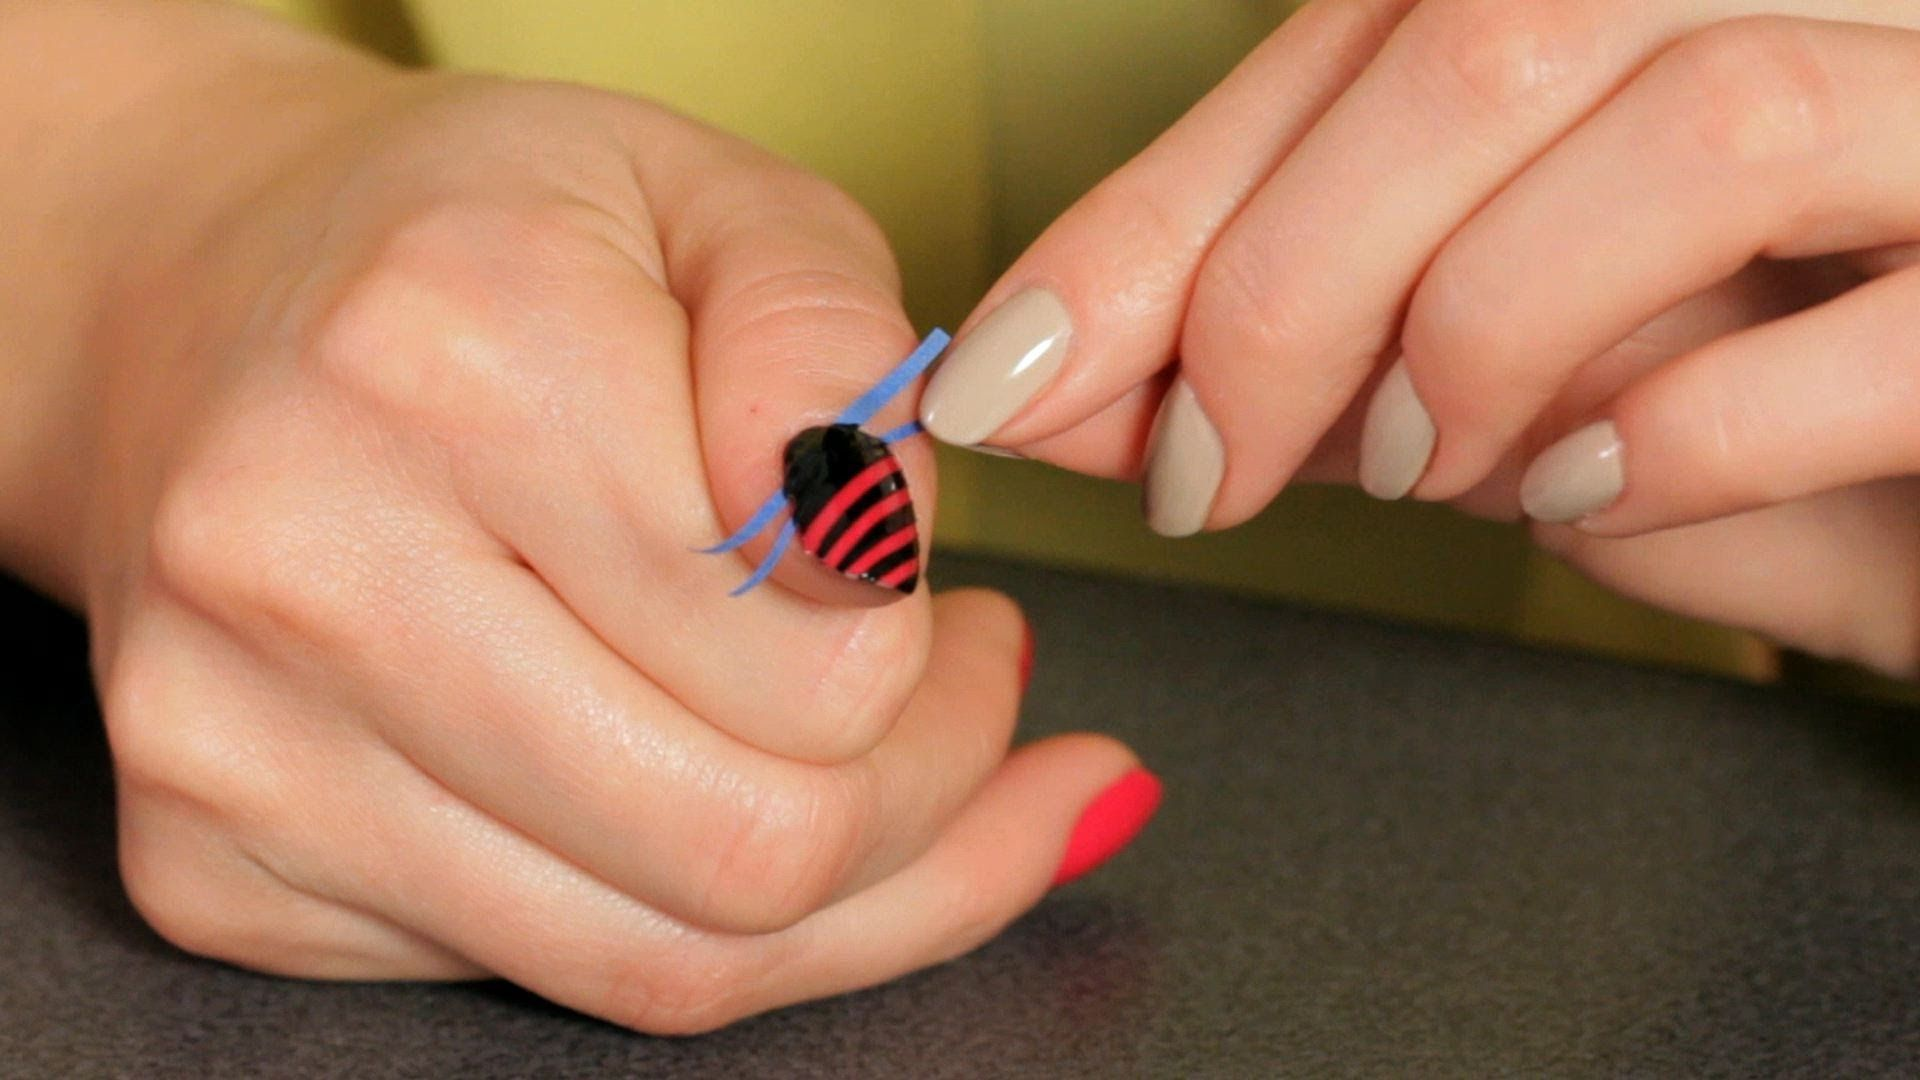 Watch more How to Do Nail Art videos: http://www.howcast.com/videos ...